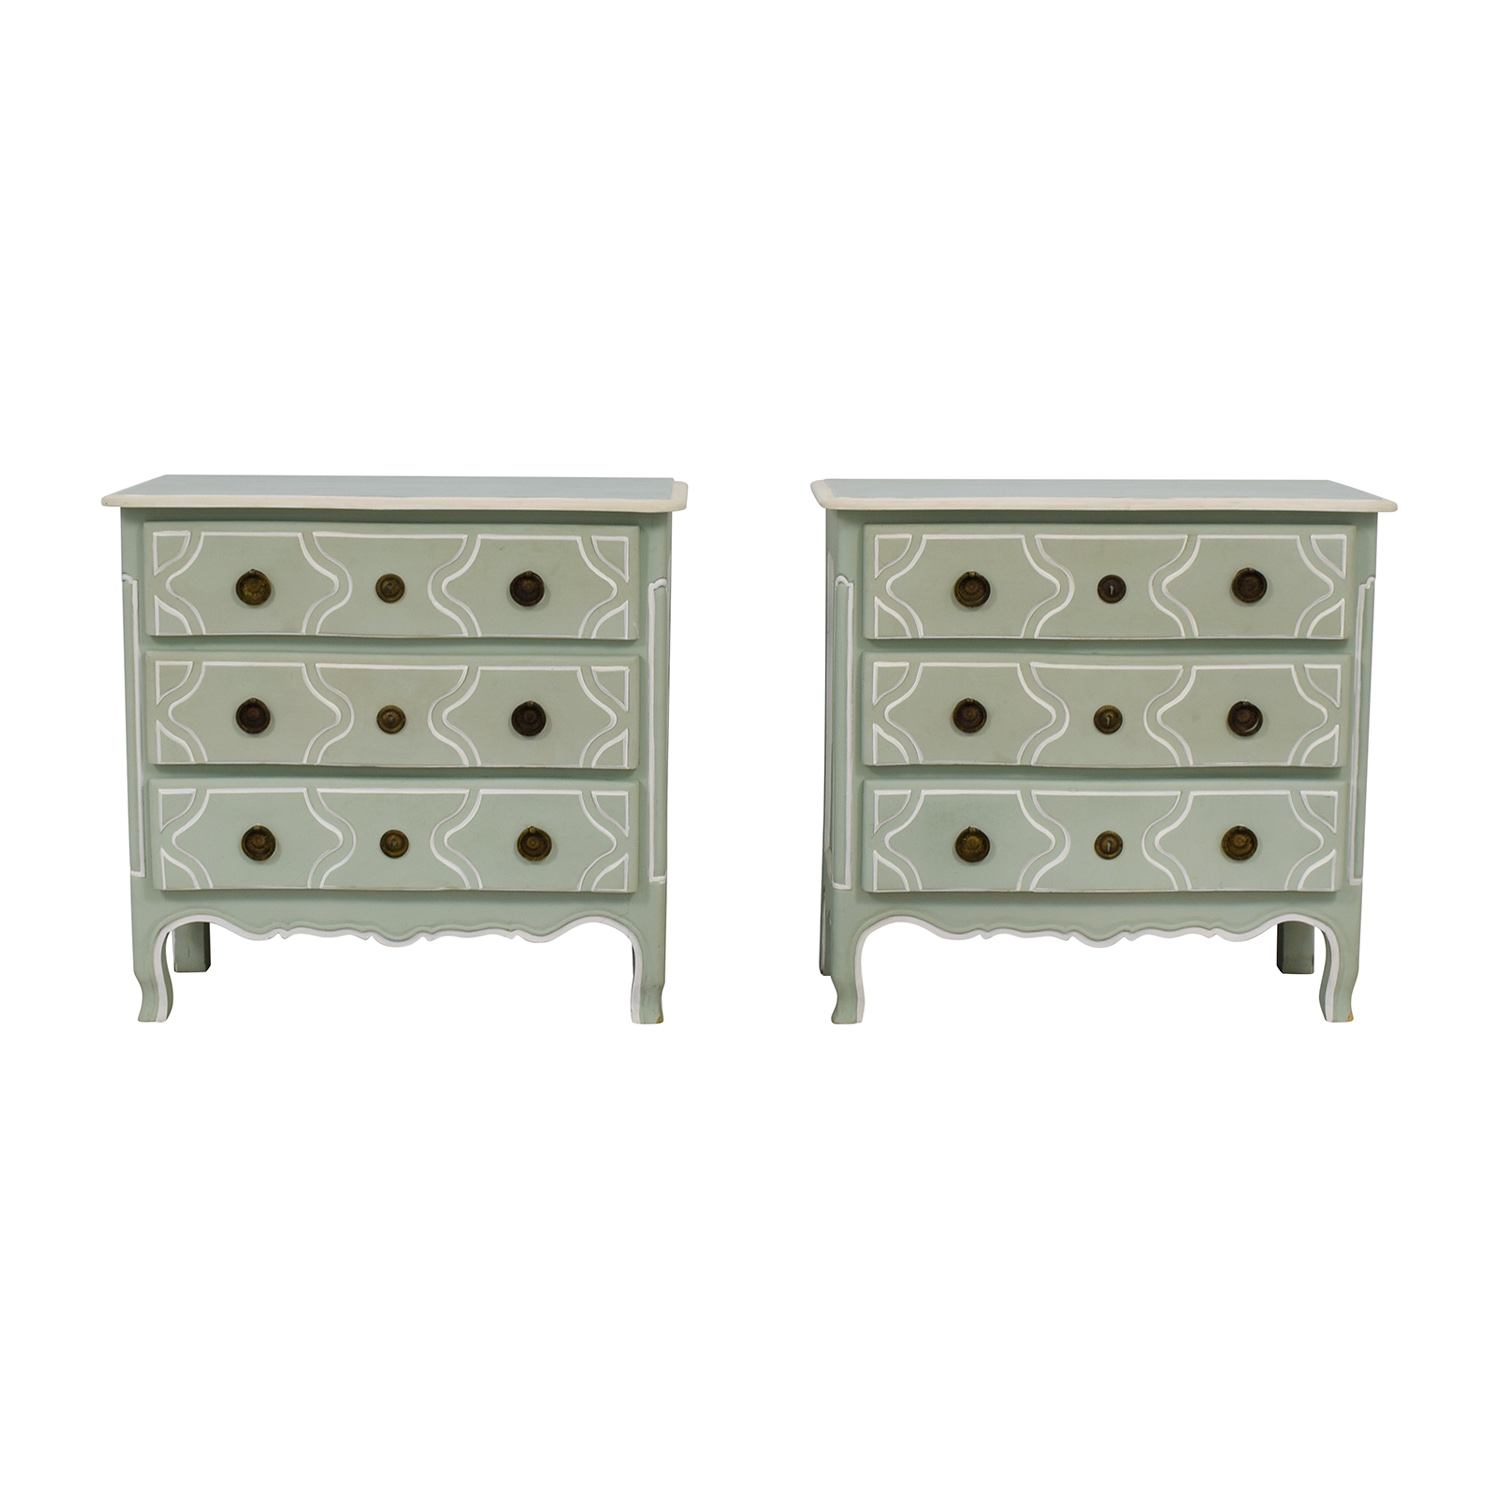 Achicha Sage Green and White Three-Drawer Dressers sale